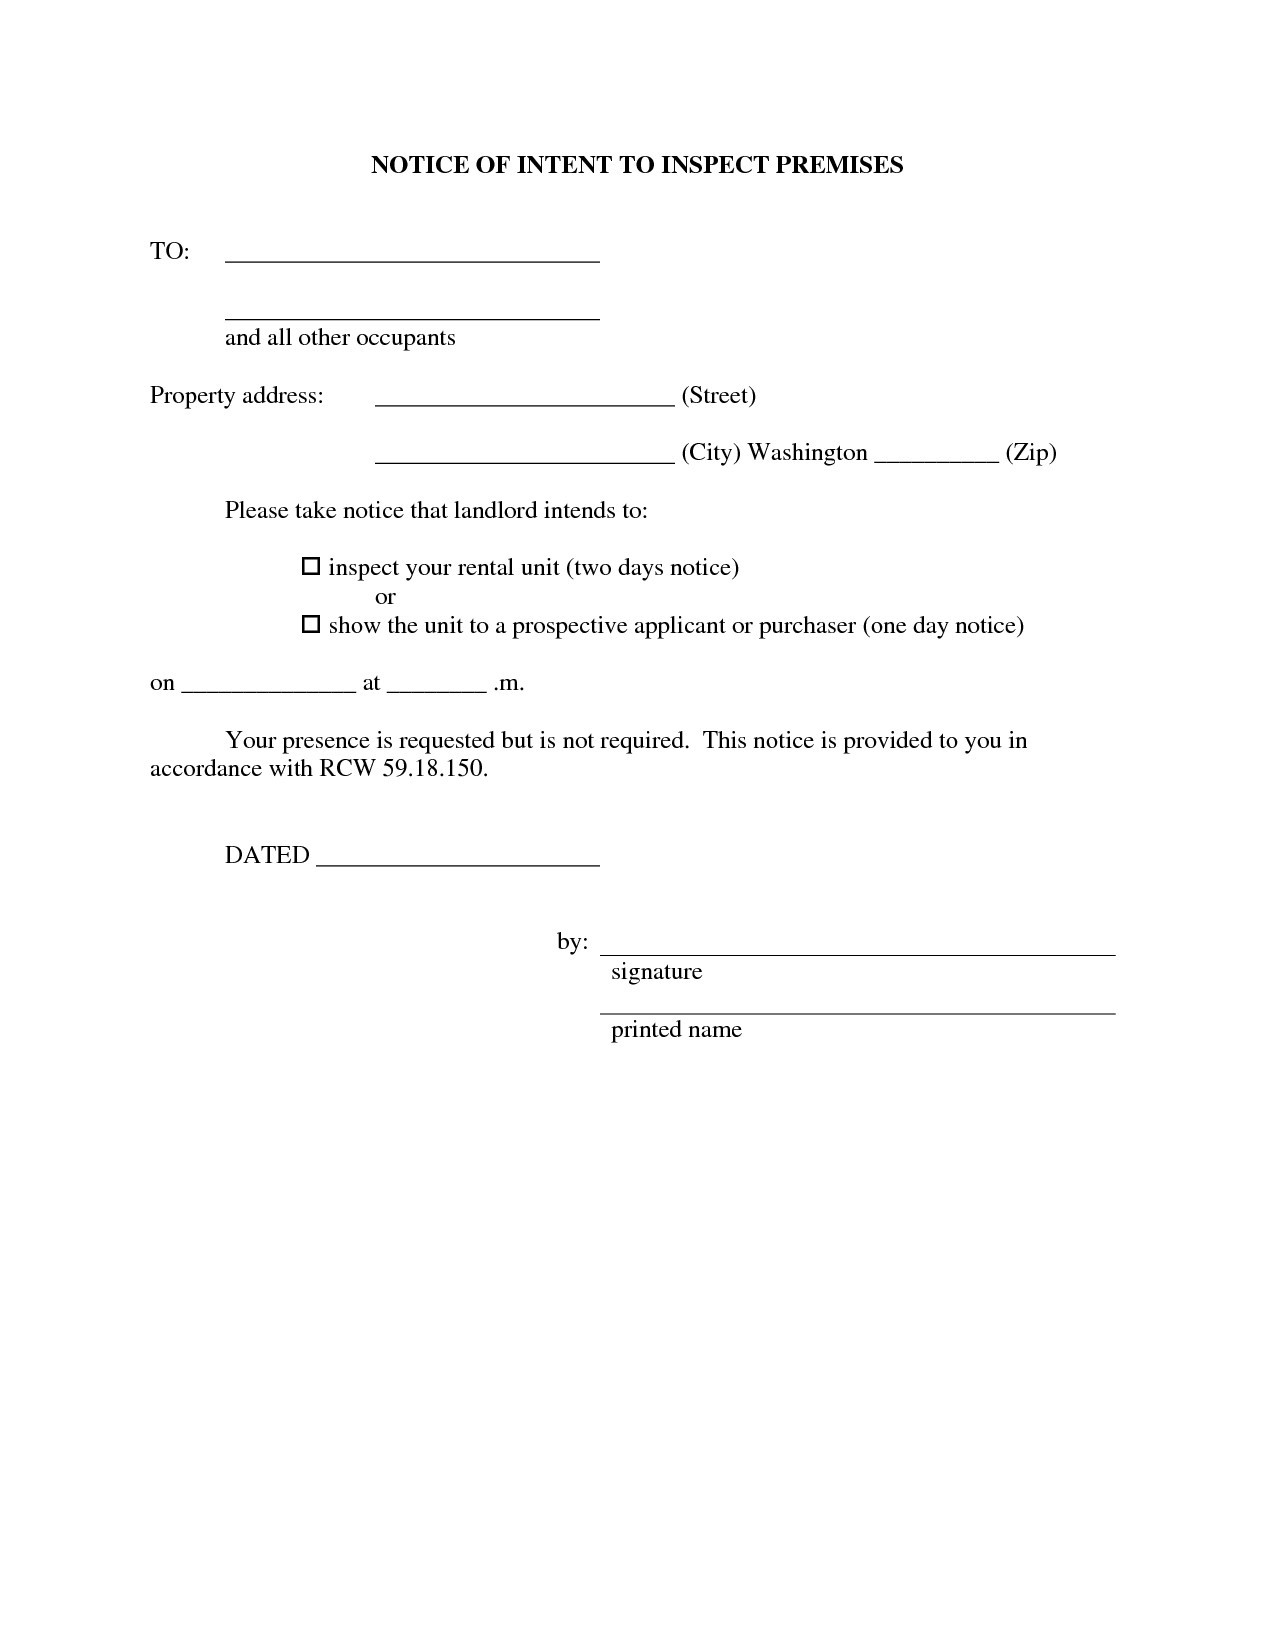 Landlord Property Inspection Letter Template - Home Inspection Contracts Agreements Best Property Inspection